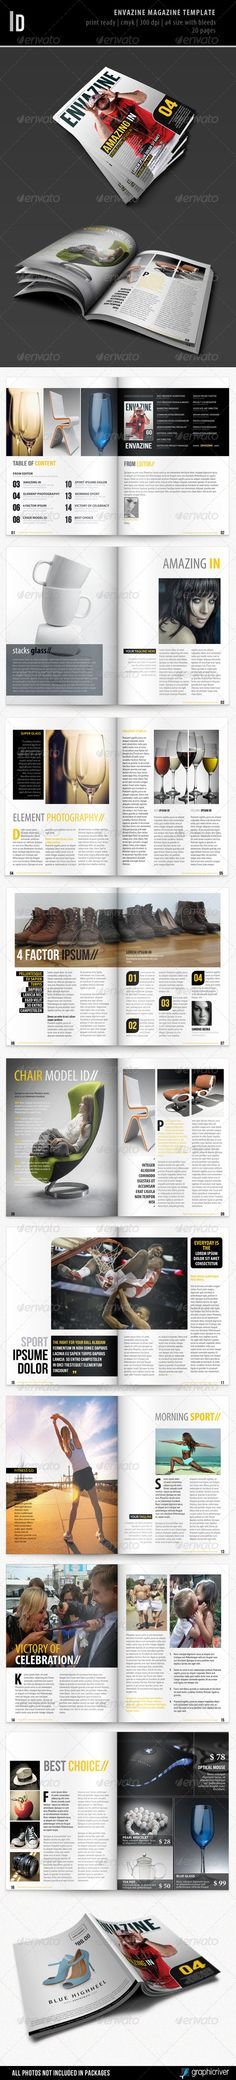 Template By Kartodarim On GraphicRiver Envazine Magazine Suitable For Any Type Of Business Features 20 Pages Size Bleed 3 Mm Print R